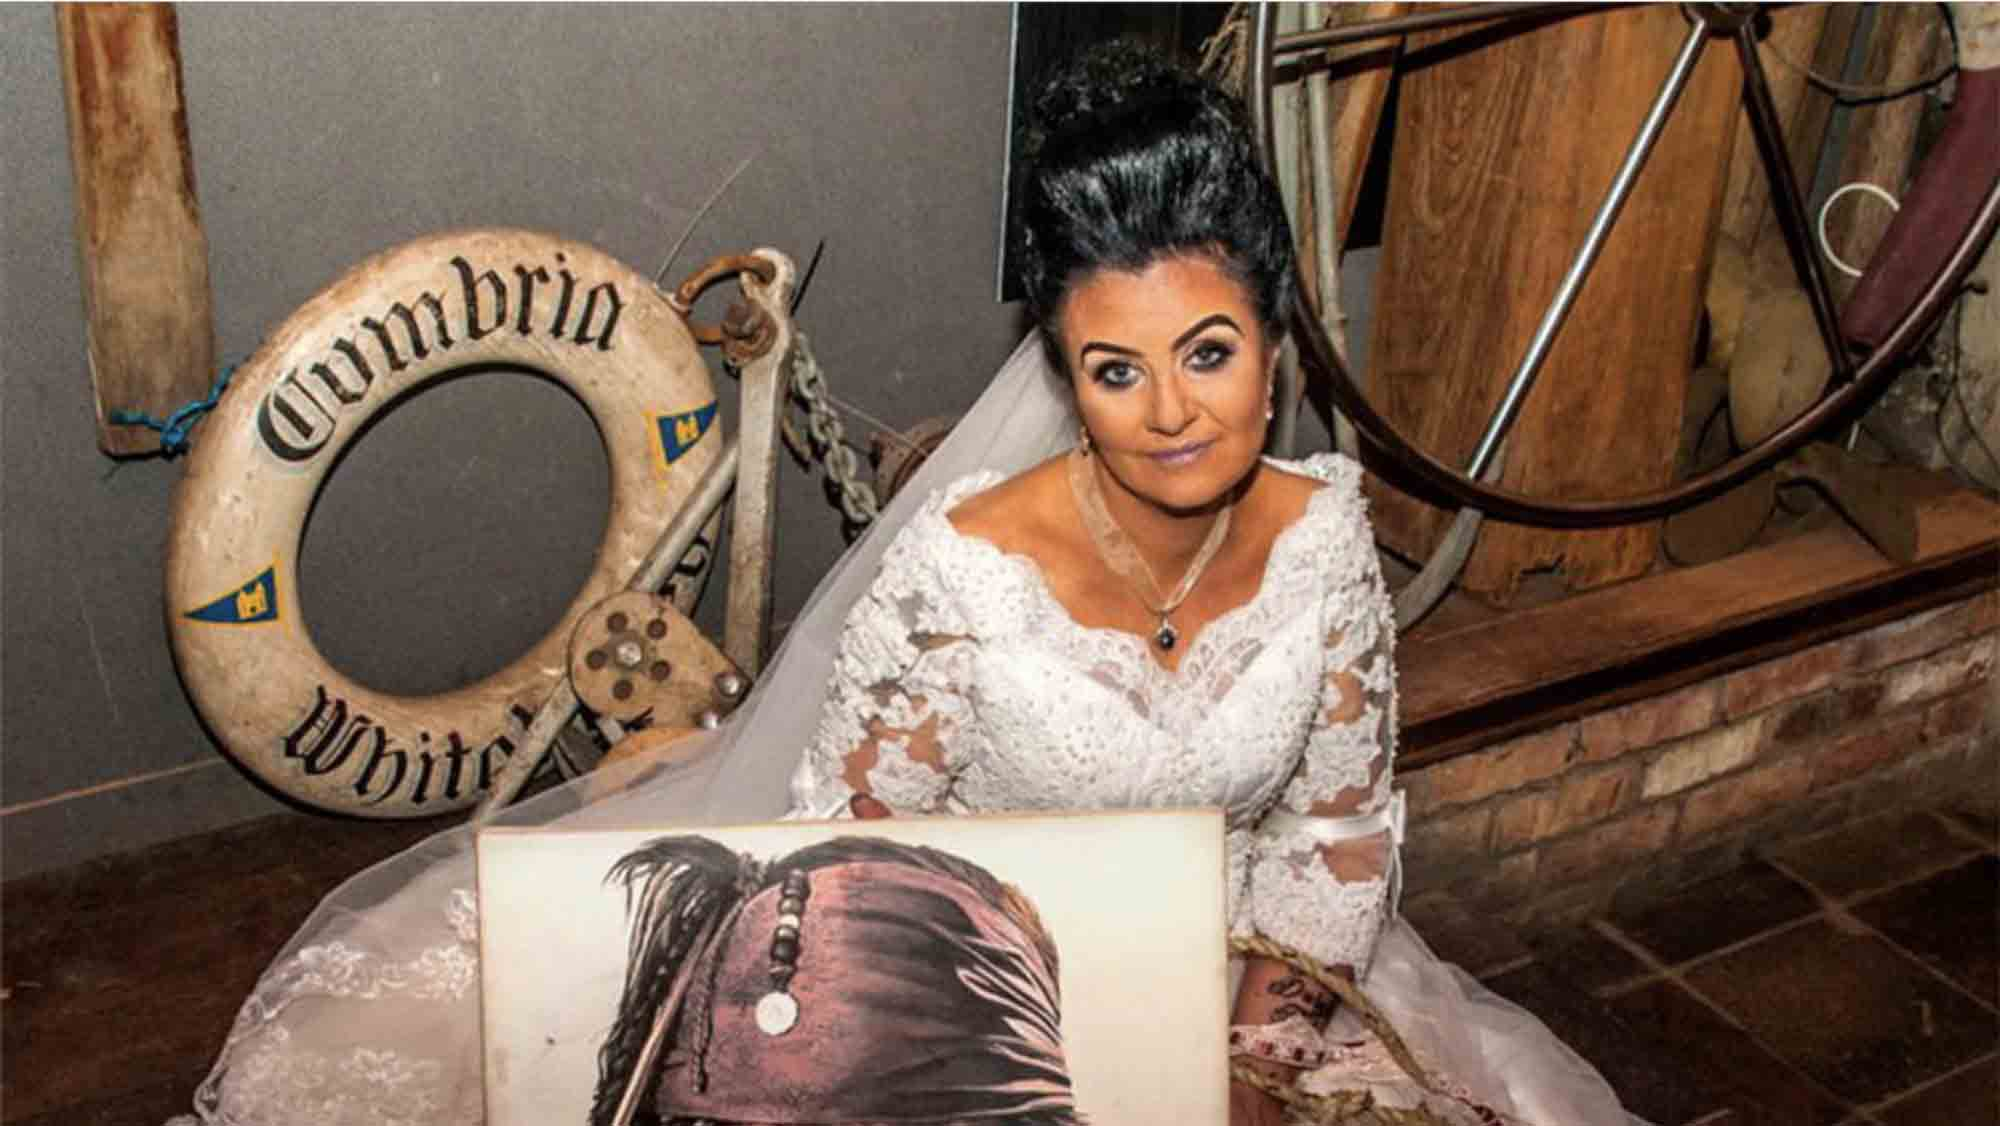 Woman Who Married A 300-Year-Old Pirate Ghost Reveals They're Splitting Up